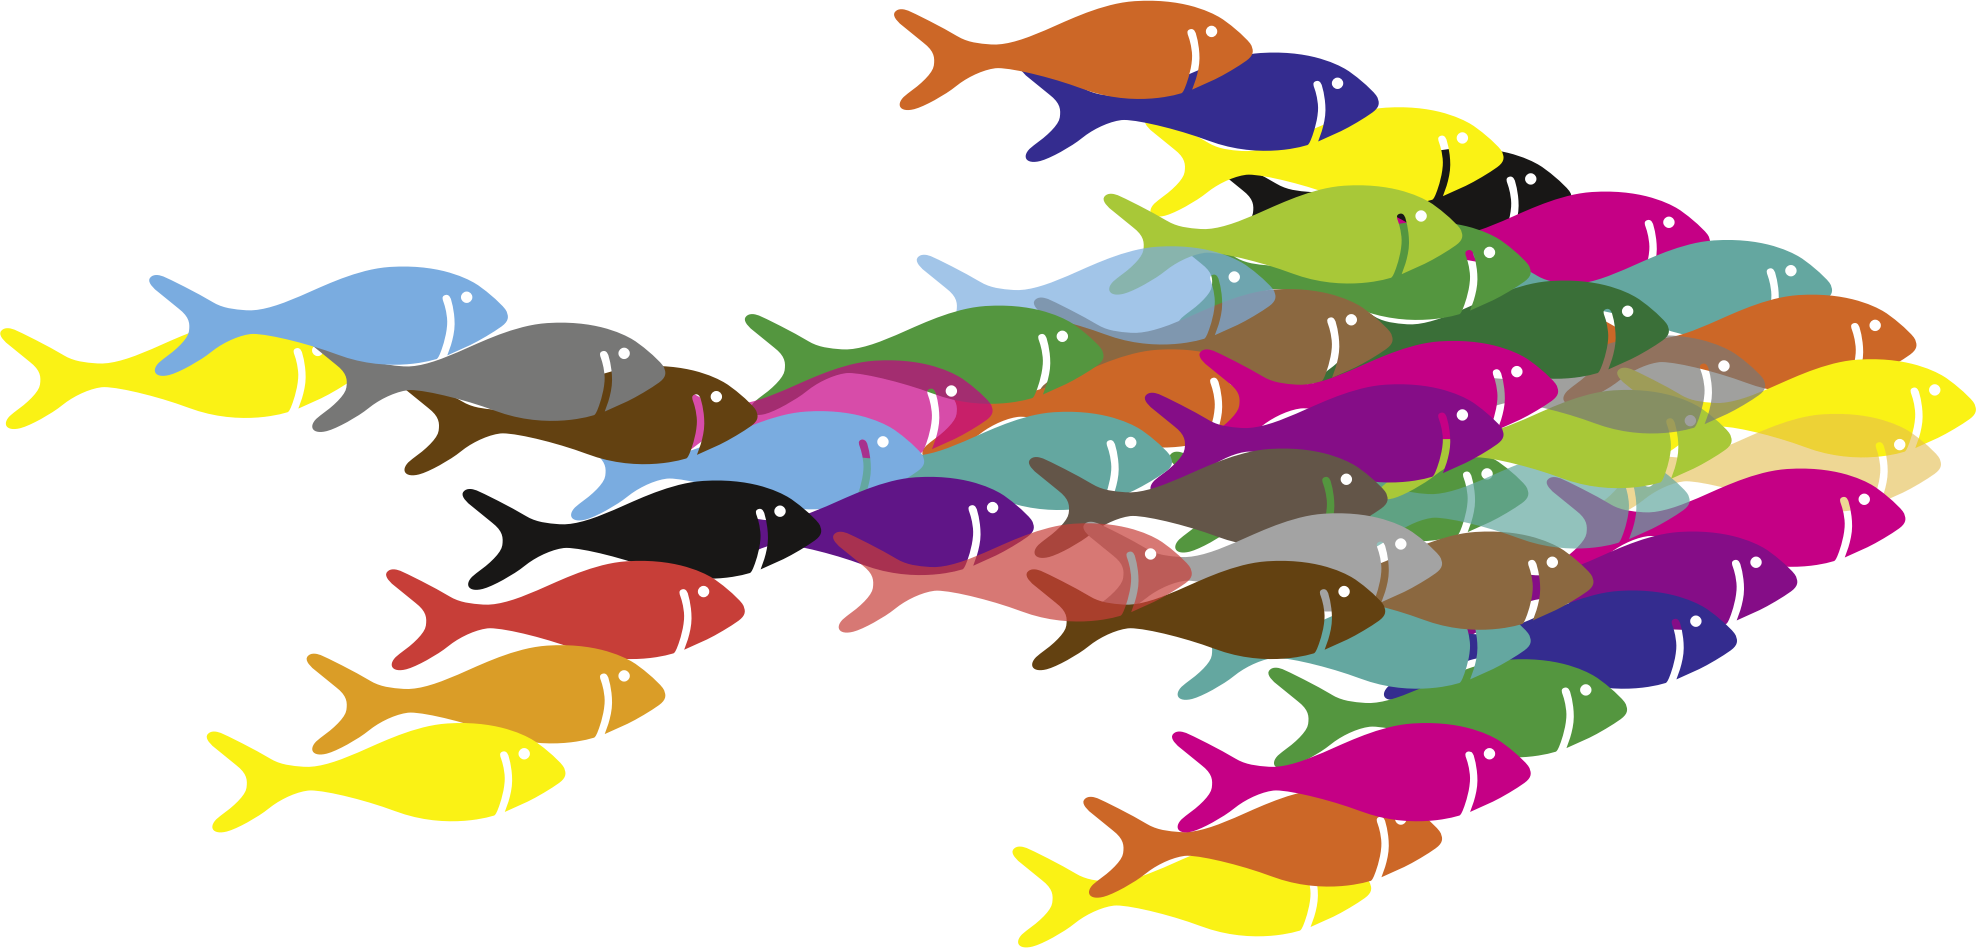 Pocket clipart colorful. Fish fractal icons png